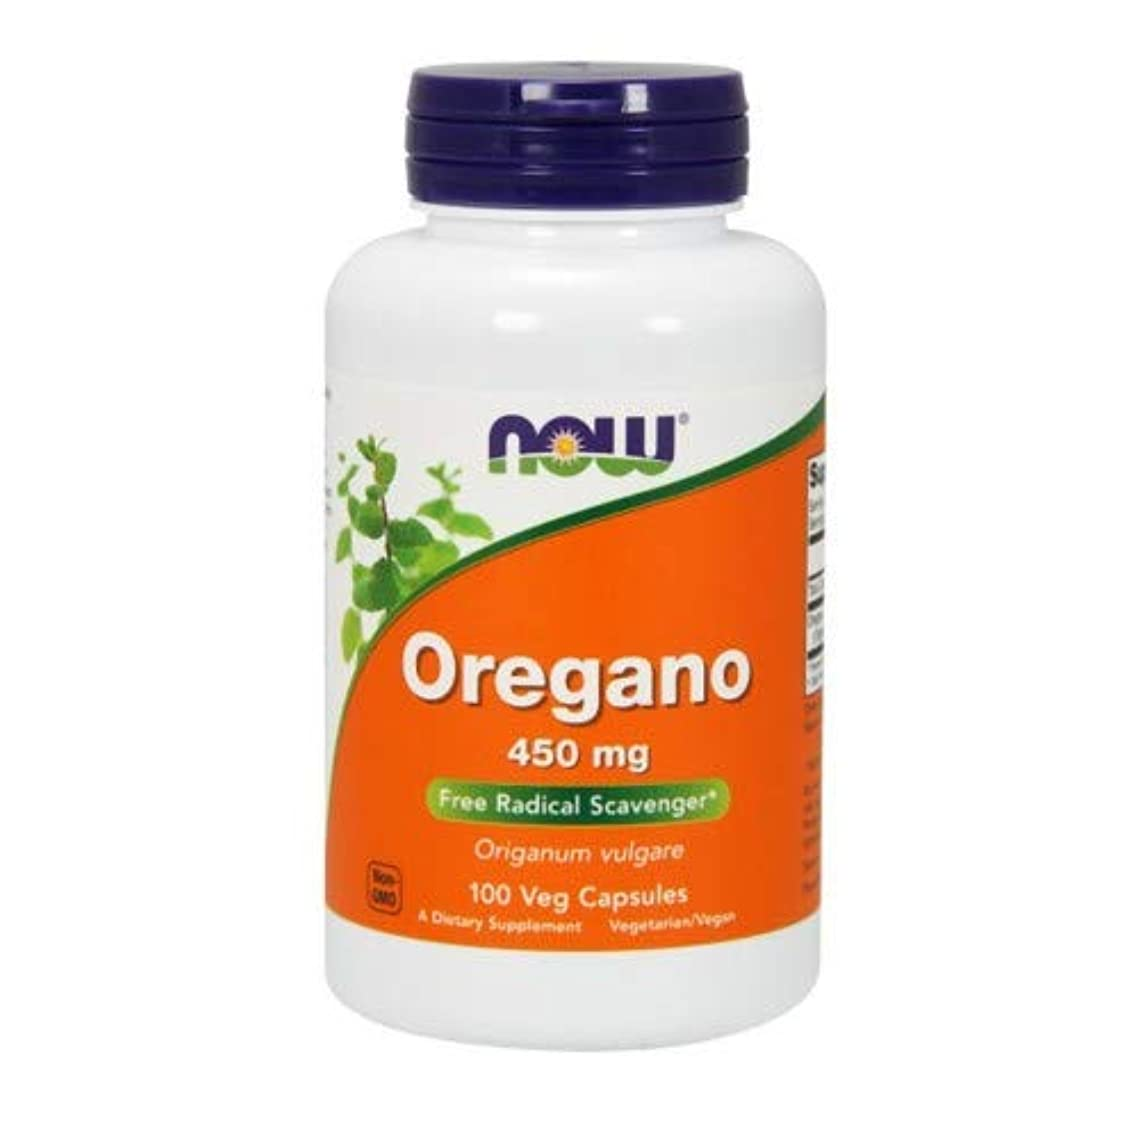 Oregano 450 mg 100 Capsules (Pack of 2)